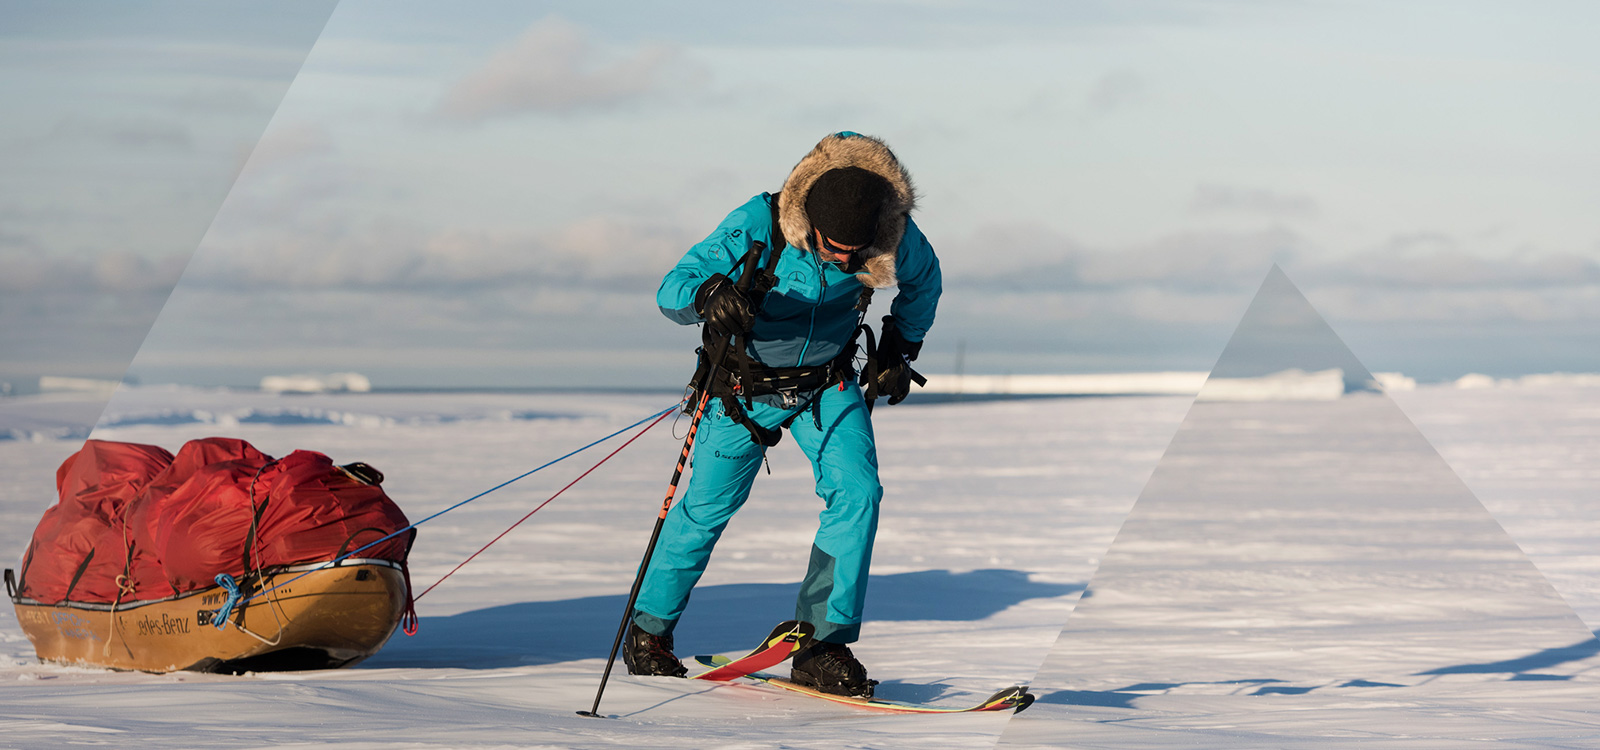 Longest solo crossing of antartica